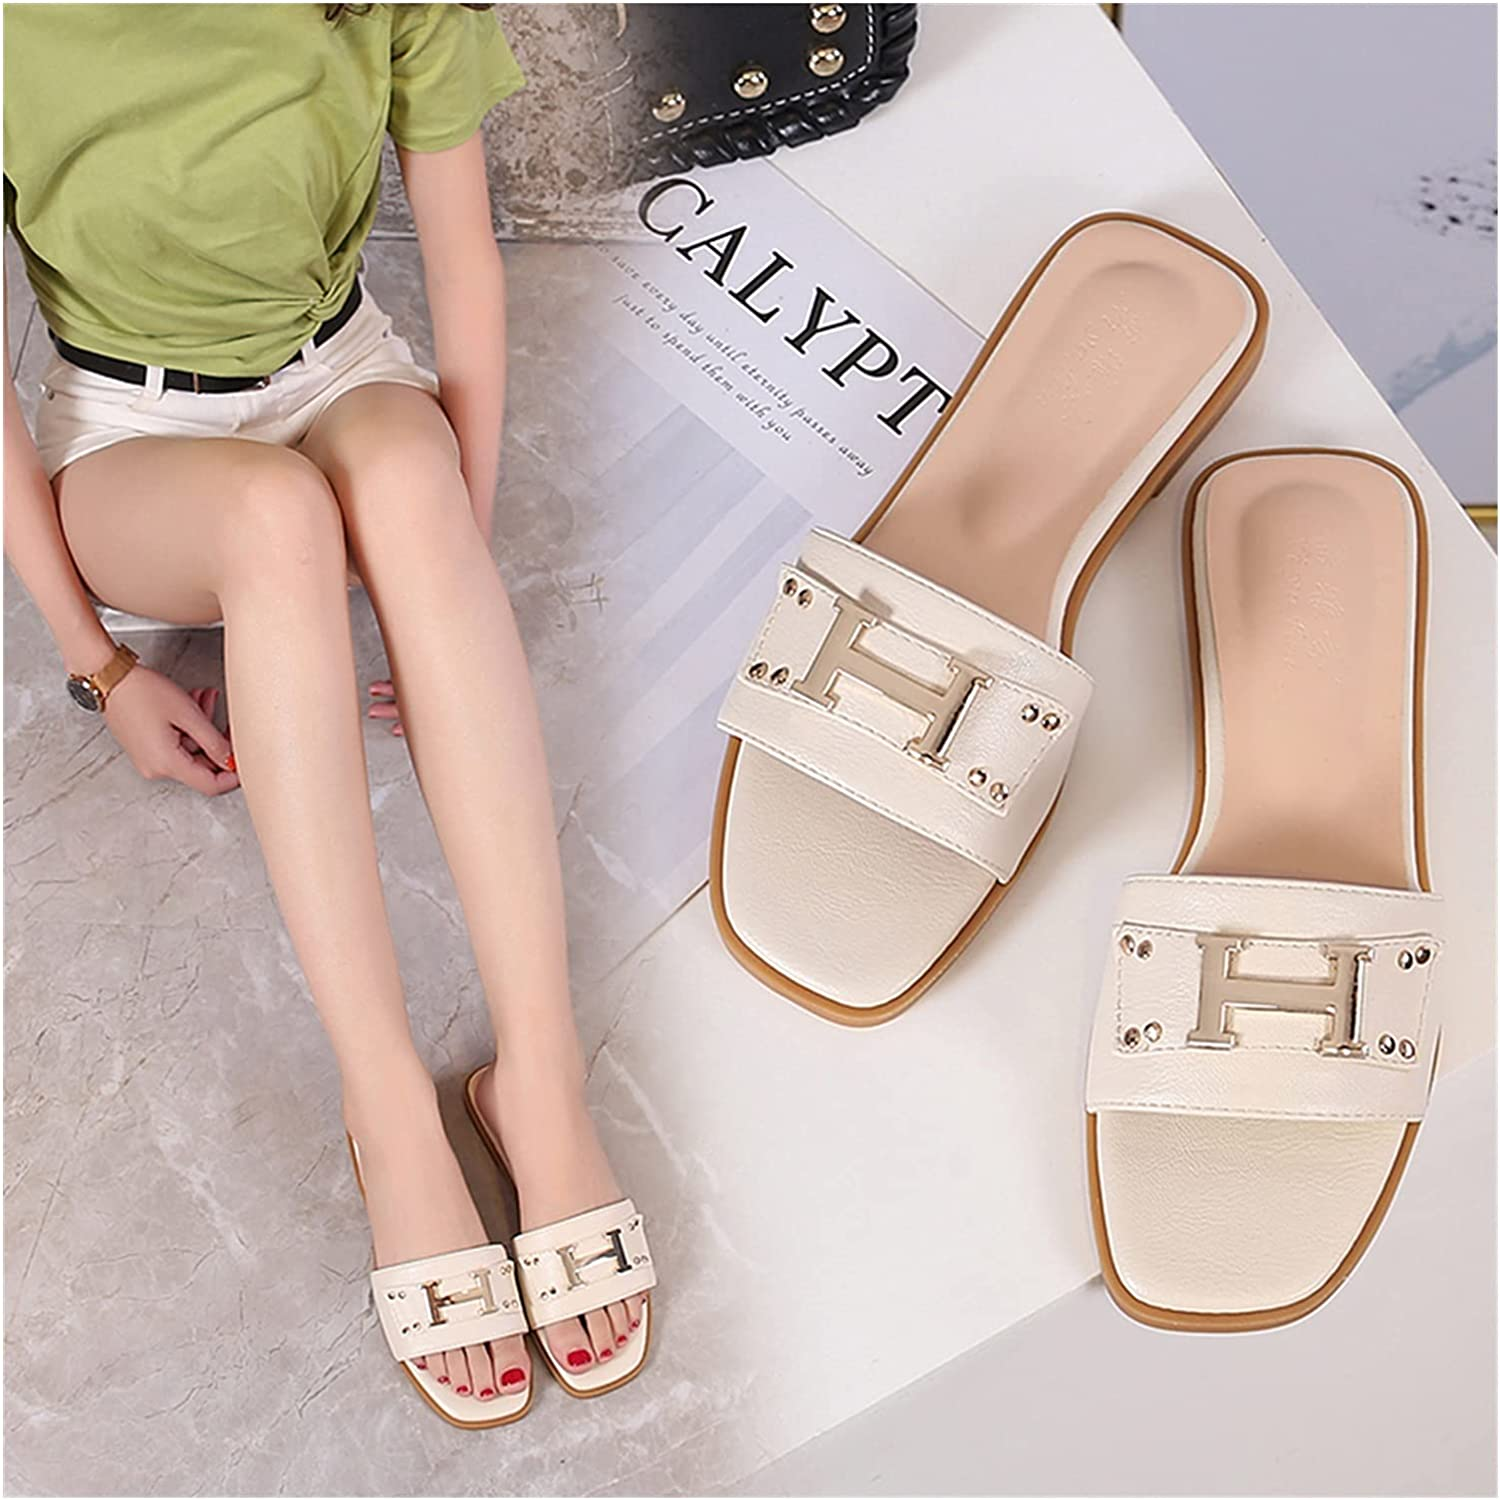 QUNHU Sandals for gift Women Flat with Women's Support Arch Shoes service